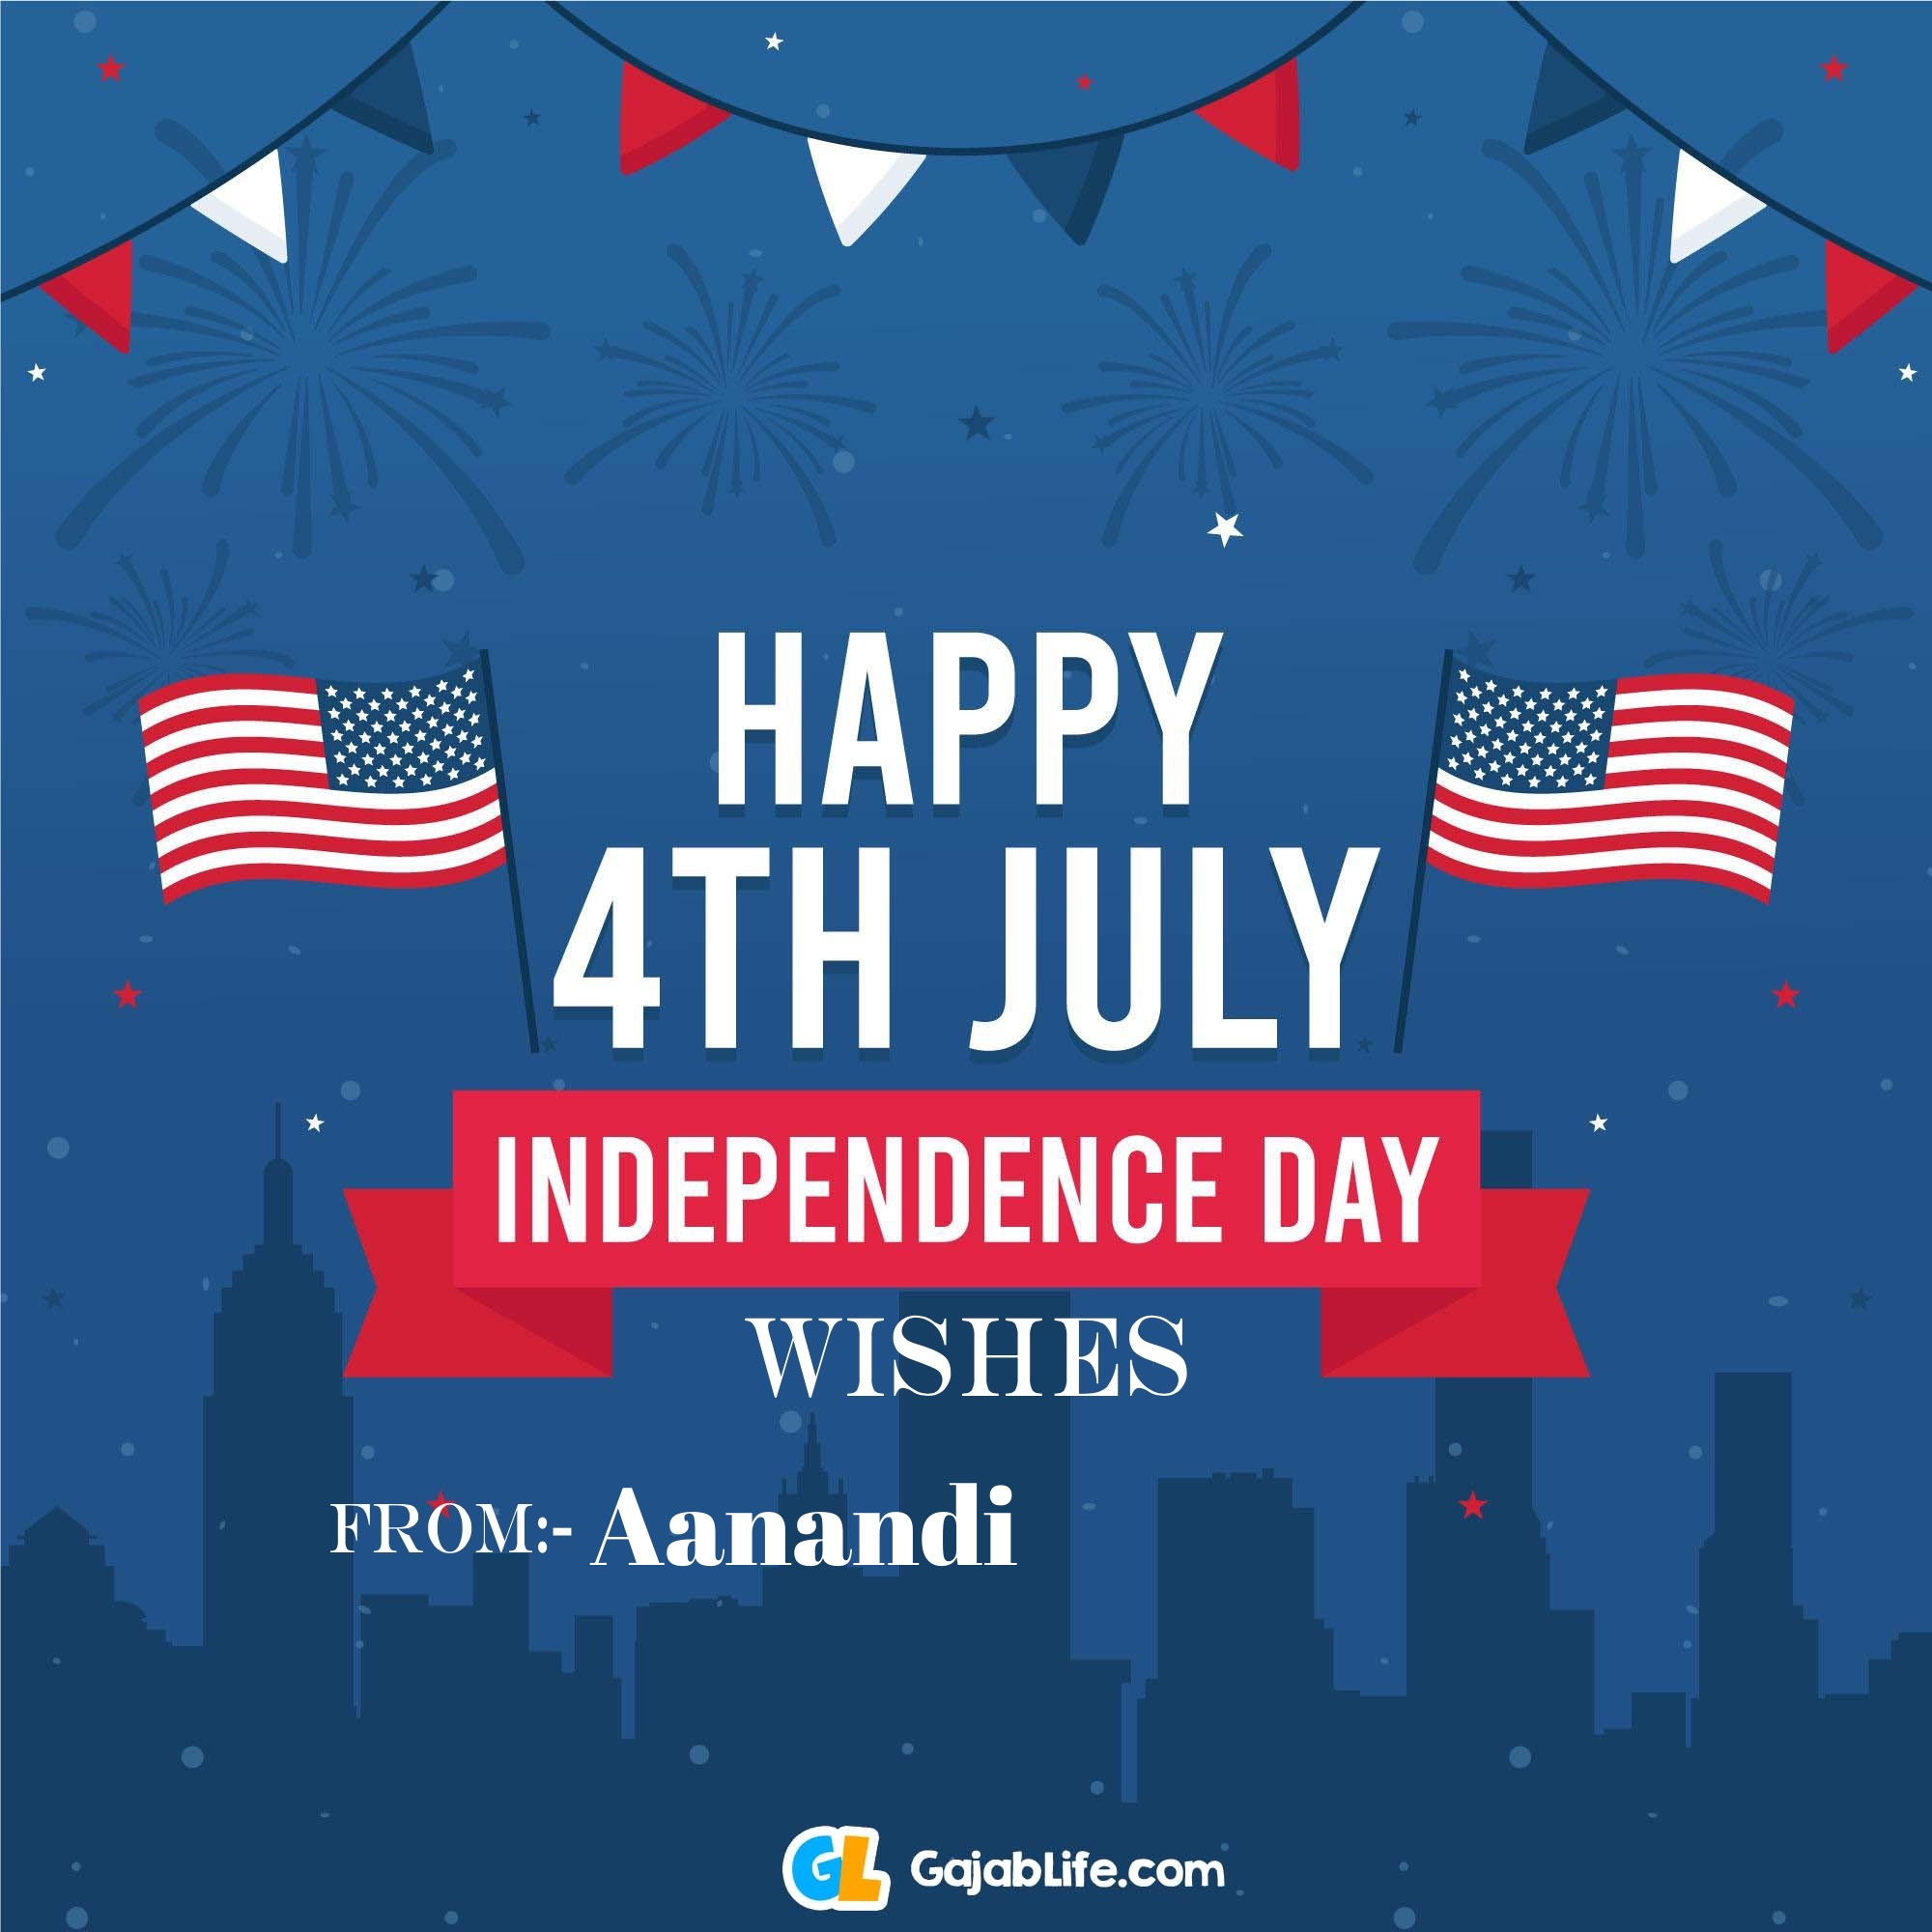 Aanandi happy independence day united states of america images